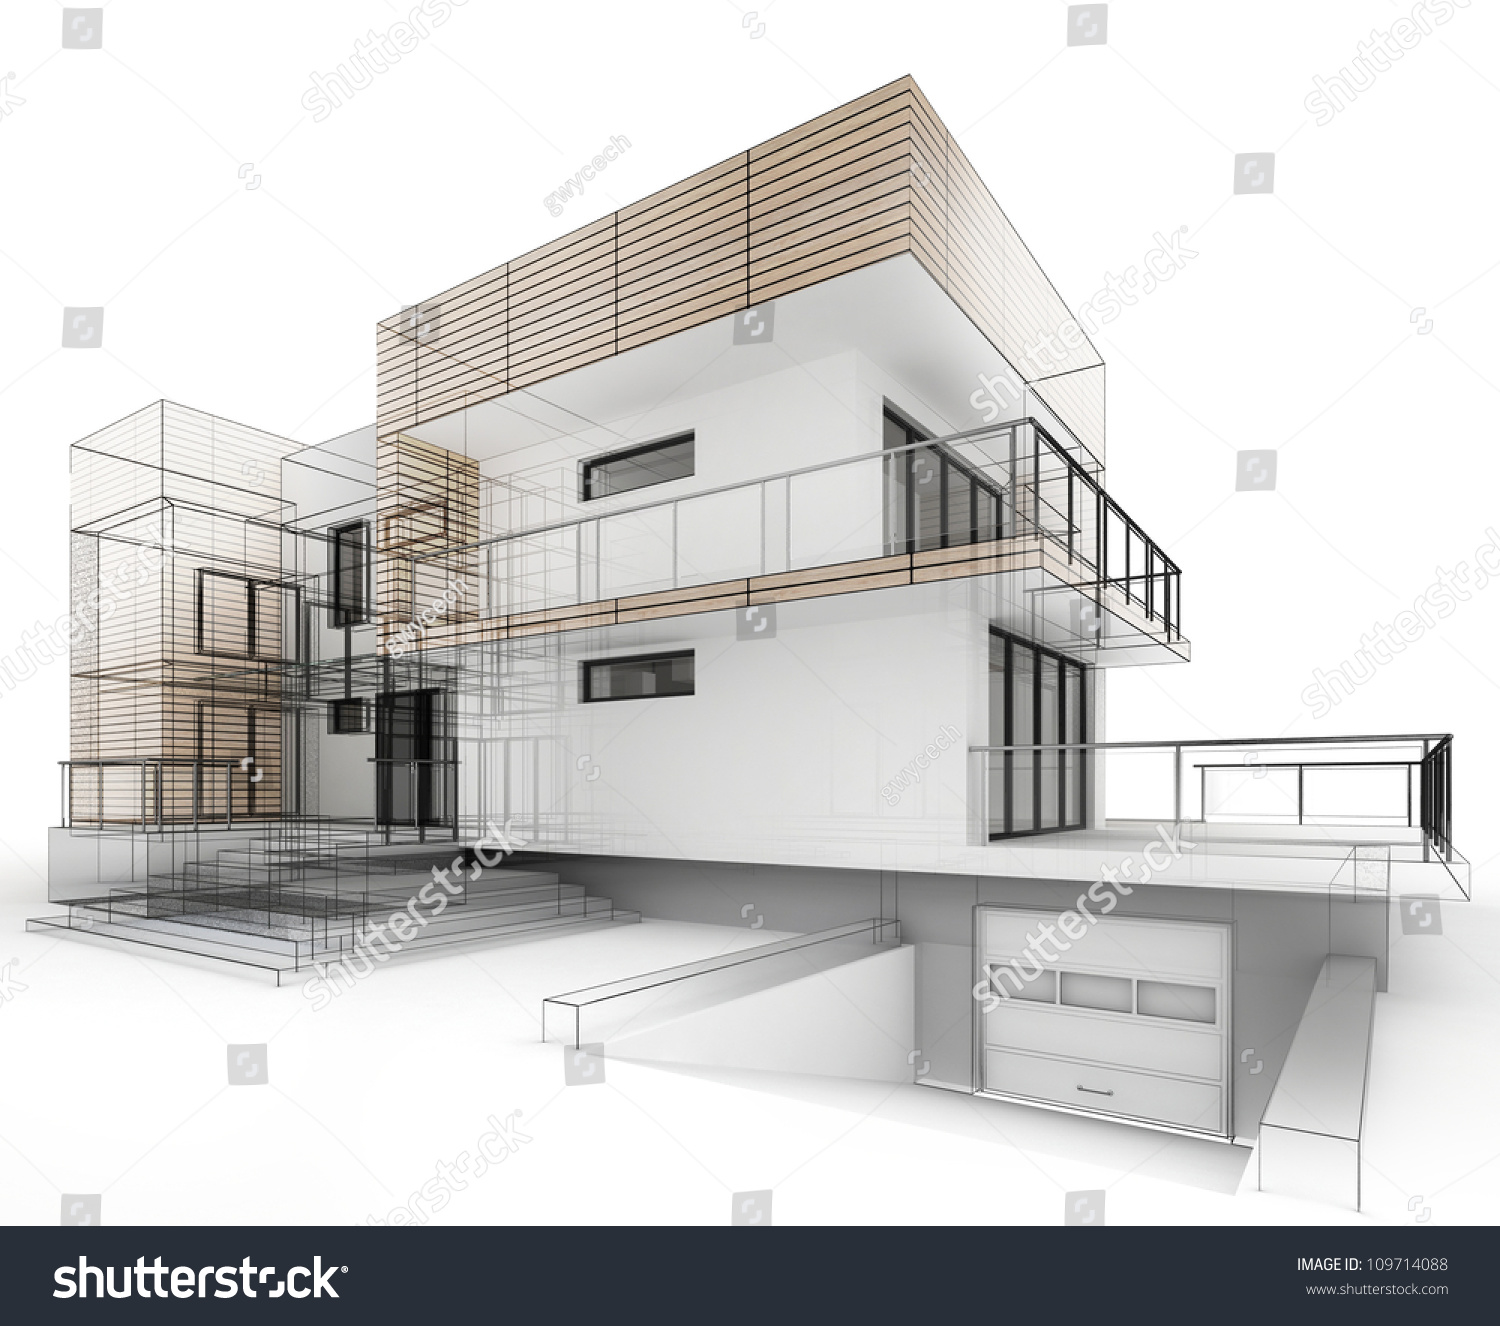 House design progress architecture drawing and for Architectural drawings of houses